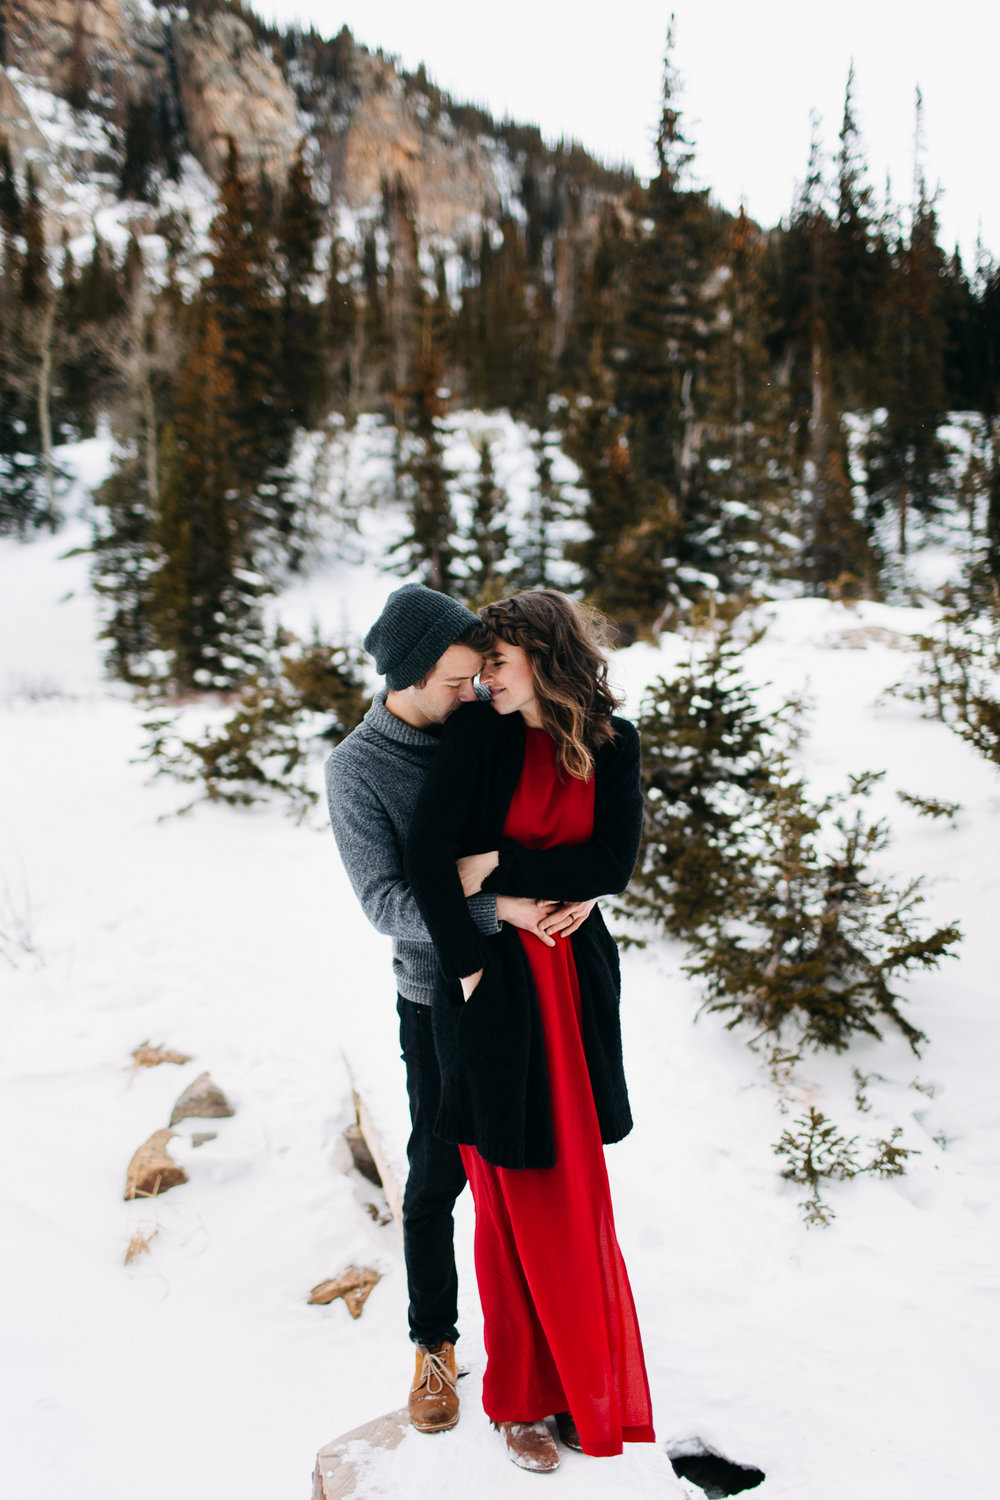 LEXIE + JAKE | WINTER ADVENTURE SESSION IN ROCKY MOUNTAIN NATIONAL PARK